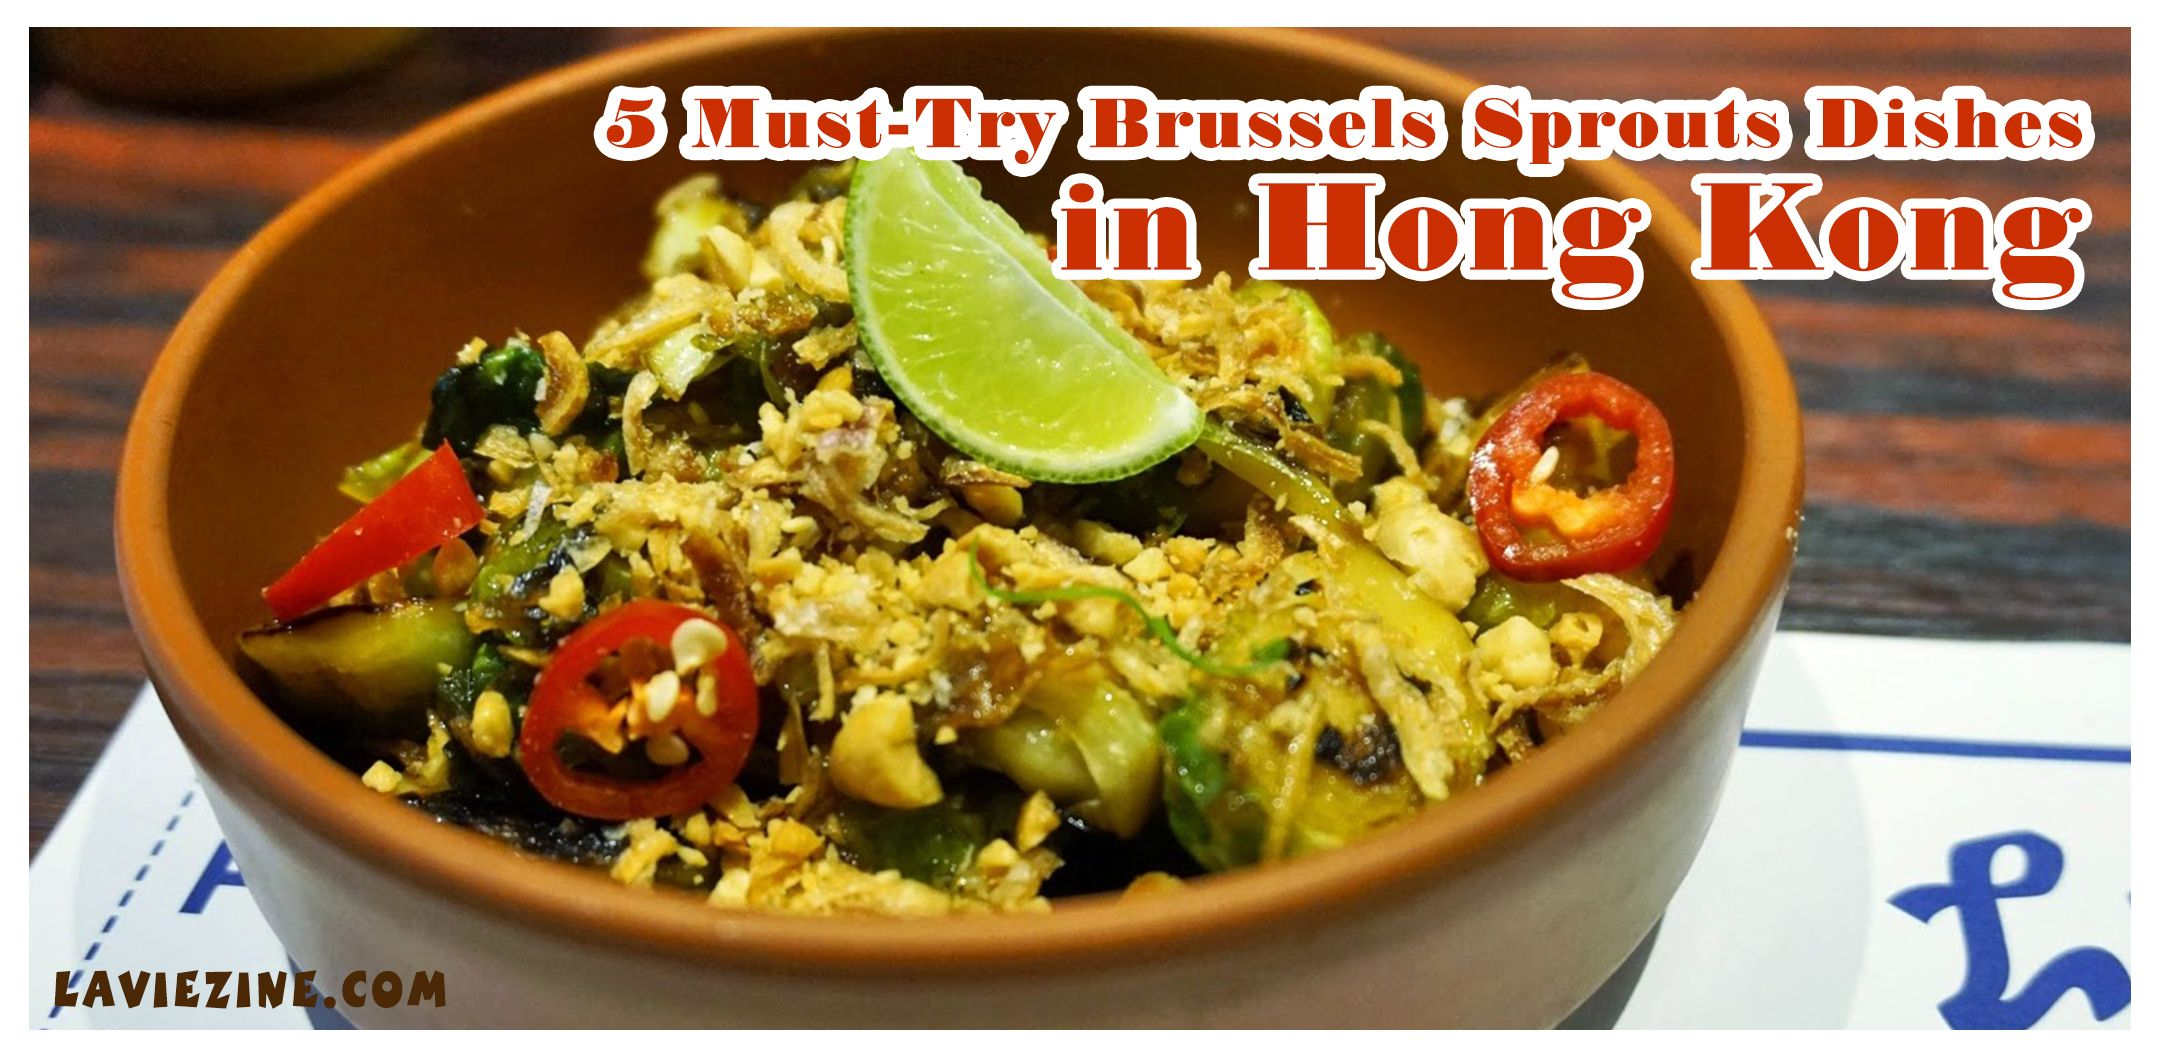 5 Must-Try Brussels Sprouts Dishes in Hong Kong - http://laviezine.com/2099/5-must-try-brussels-sprouts-dishes-in-hong-kong/ #5MustTryBrusselsSproutsDishesInHongKong, #HoLeeFook, #HoLeeFookSBrusselsSproutsWithMapleBaconAndChilliJam, #LittleBao, #LittleBaoSRoastedBrusselsSprouts, #Motorino, #MotorinoSBrusselsSproutPizza, #PopsyRoom, #PopsyRoomSScampiRavioliWithBrusselsSprouts, #Yardbird, #YardbirdSBrusselsSproutsWithCrispyGarlic When we think of brussels sprouts, many of us